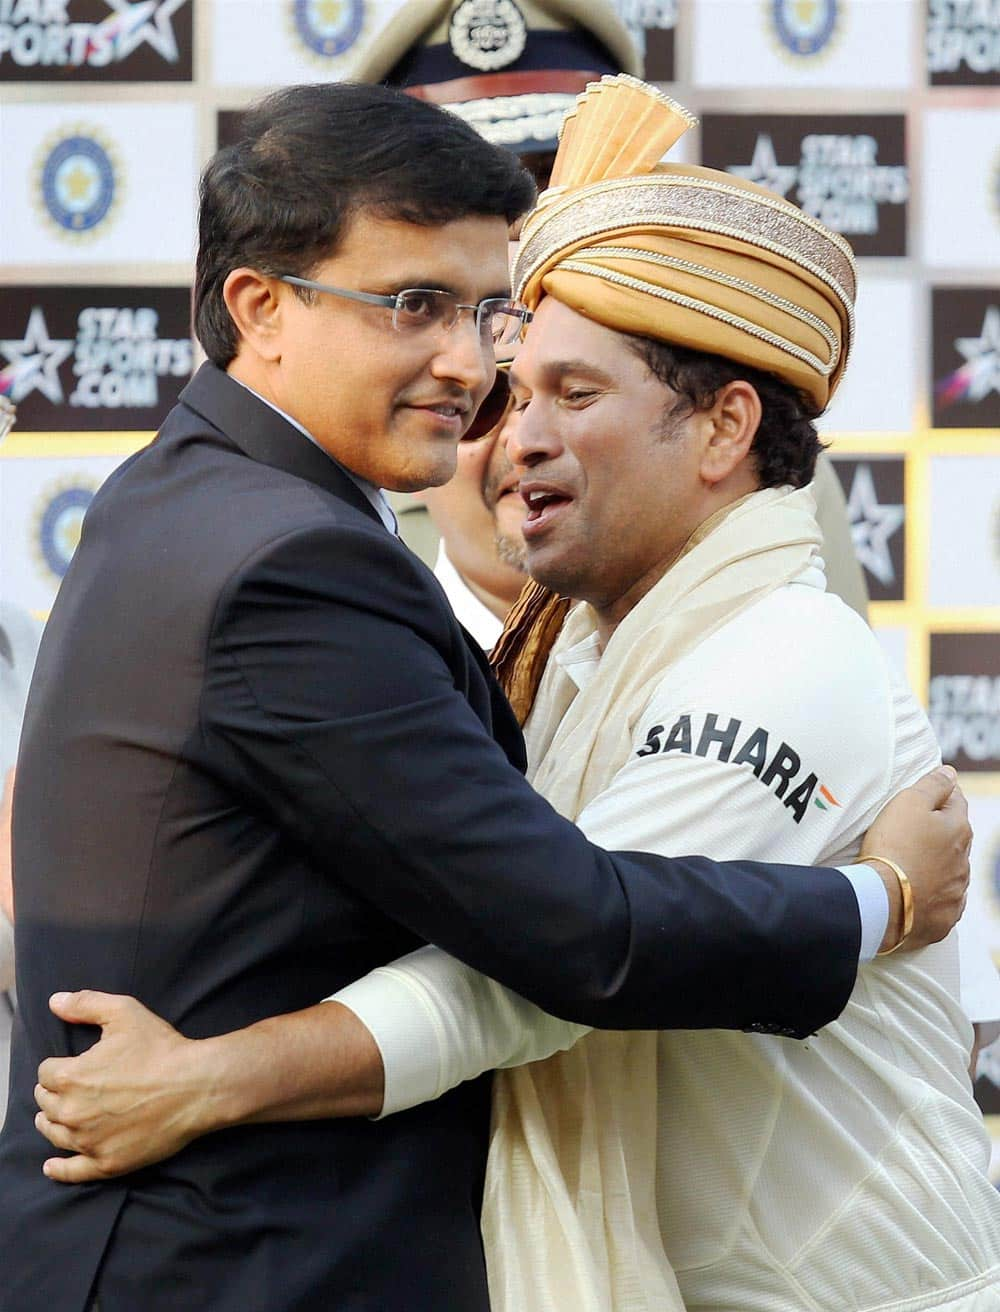 Master blaster Sachin Tendulkar is greeted by former captain Sourav Ganguly at the presentation ceremony after the end of the first Test match against West Indies at Eden Garden in Kolkata.